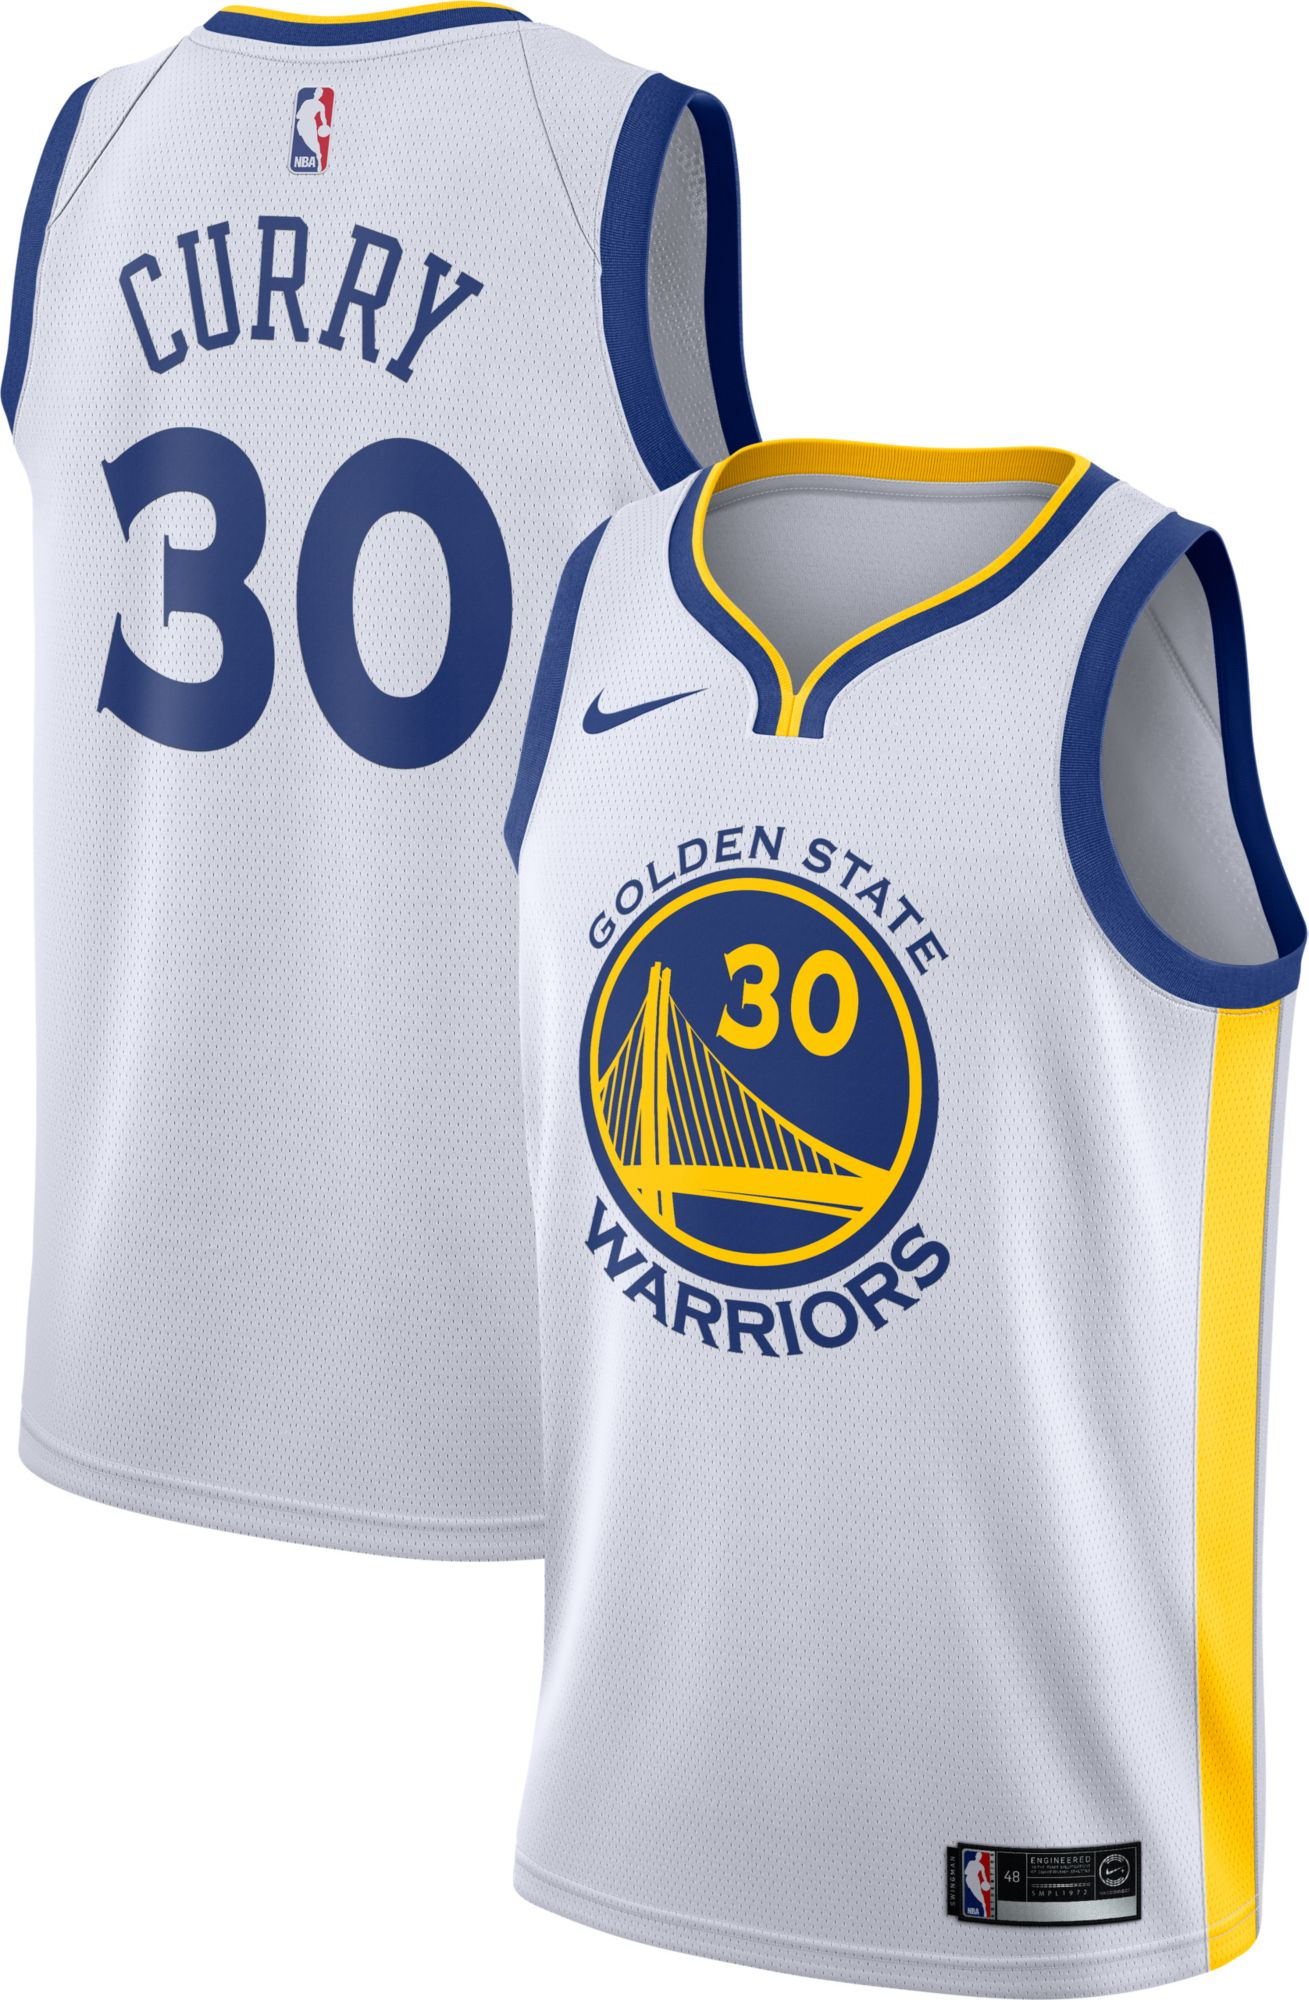 f8a7d7e44 Nike Men's Golden State Warriors Stephen Curry #30 White Dri-FIT ...